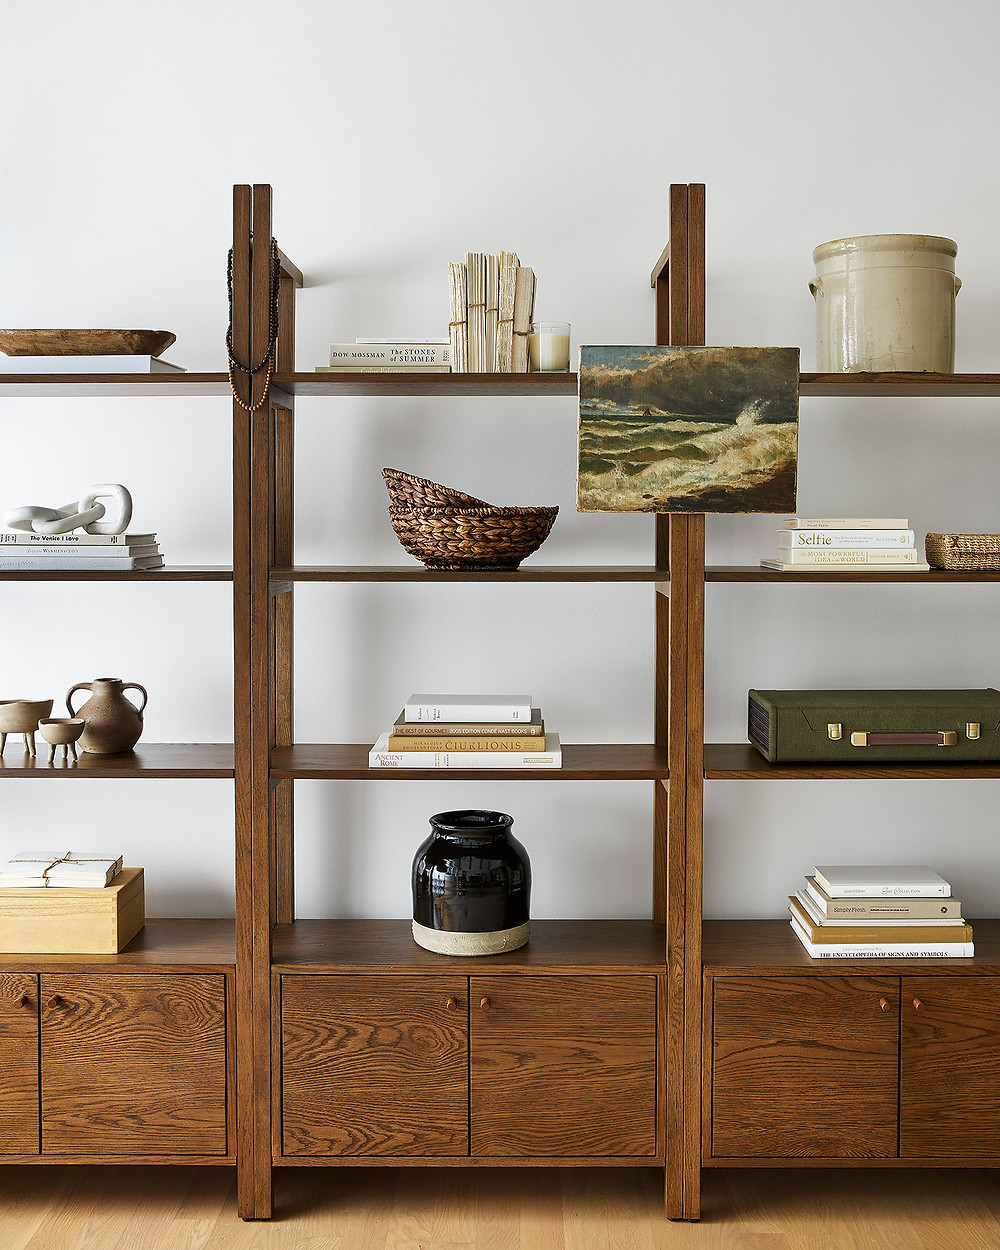 wood bookcases styled with pottery and baskets